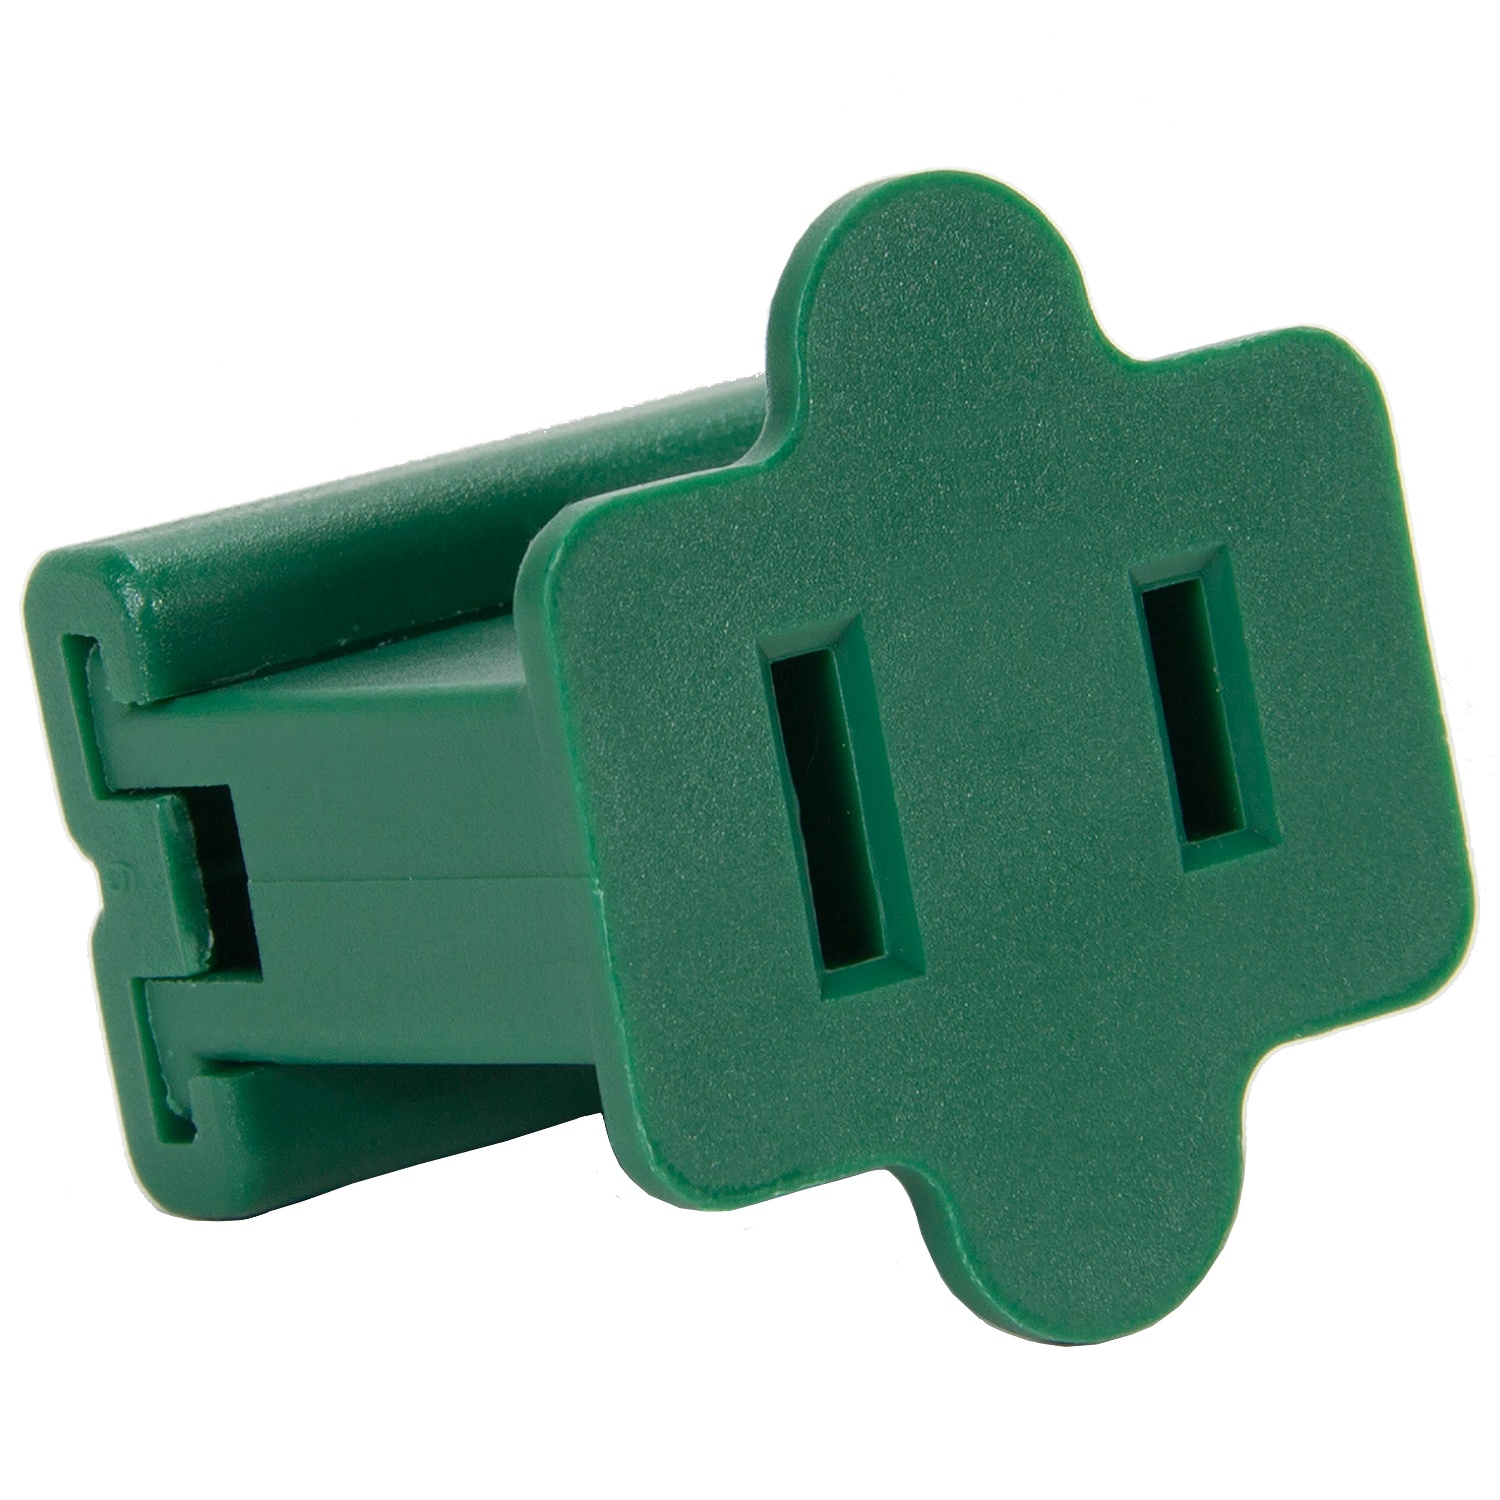 Female-Zip-Plug-1092.jpg